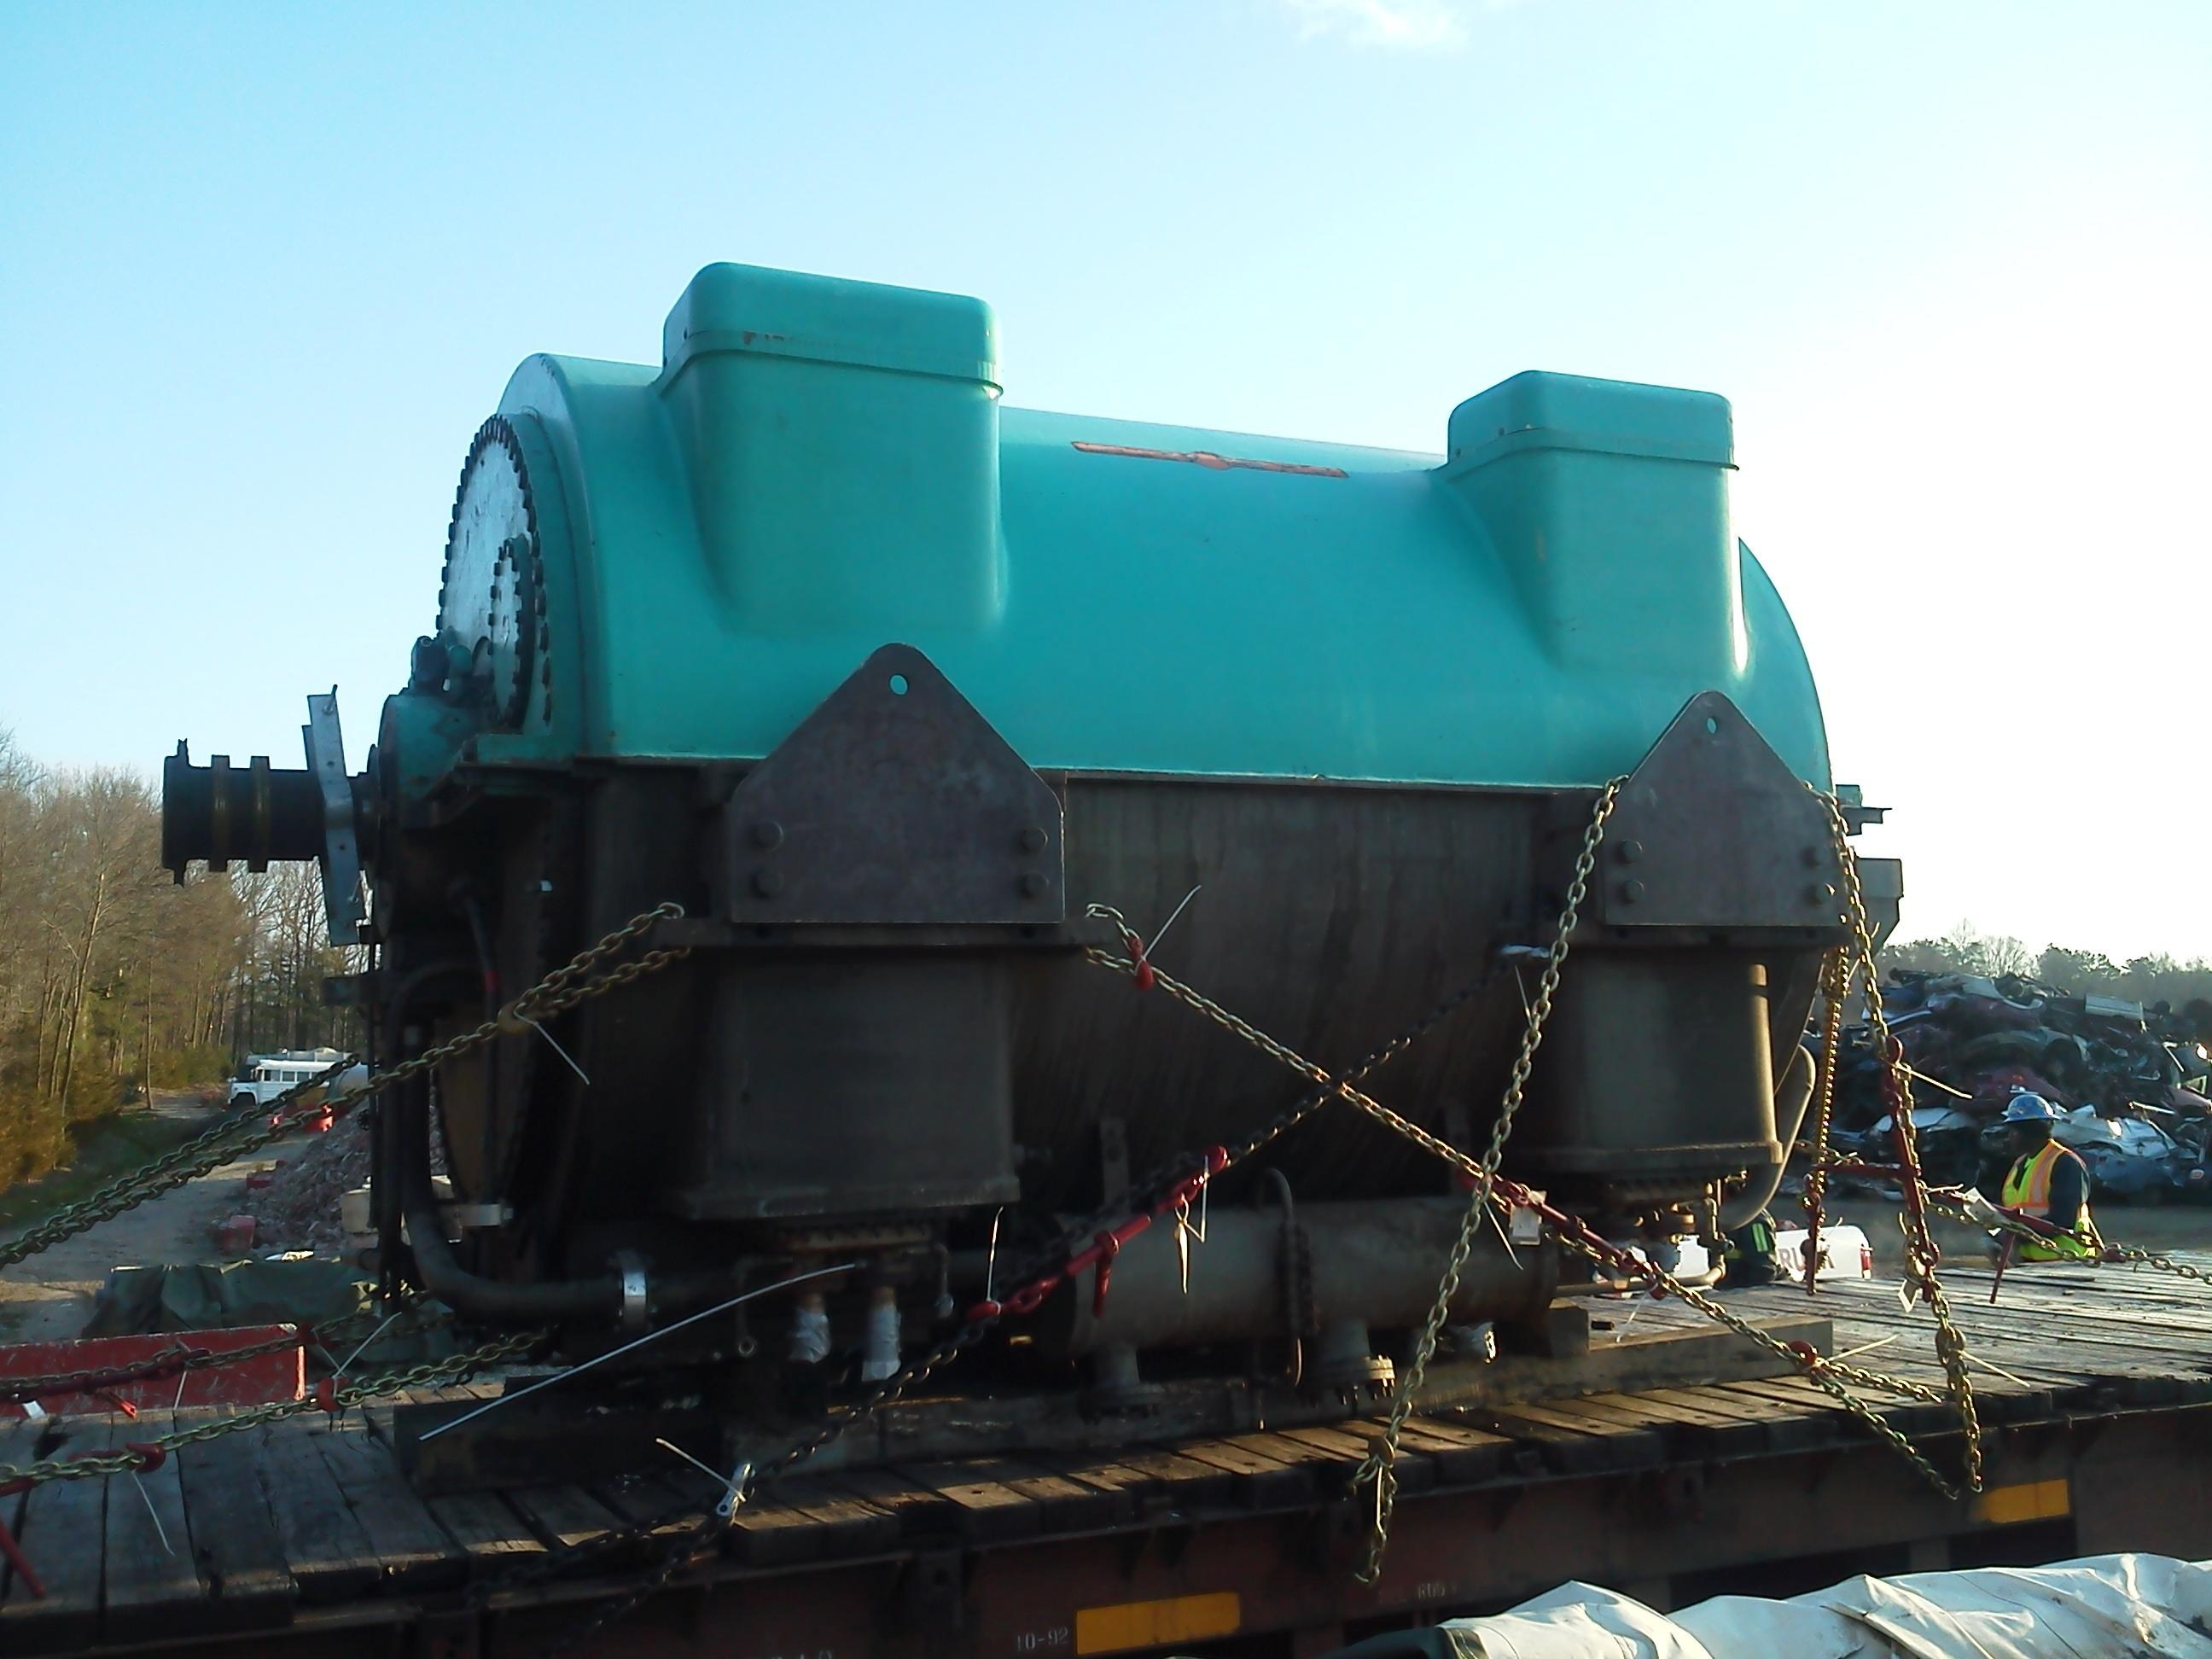 23 000 KW GE Steam Turbine Generator for Sale at Phoenix Equipment